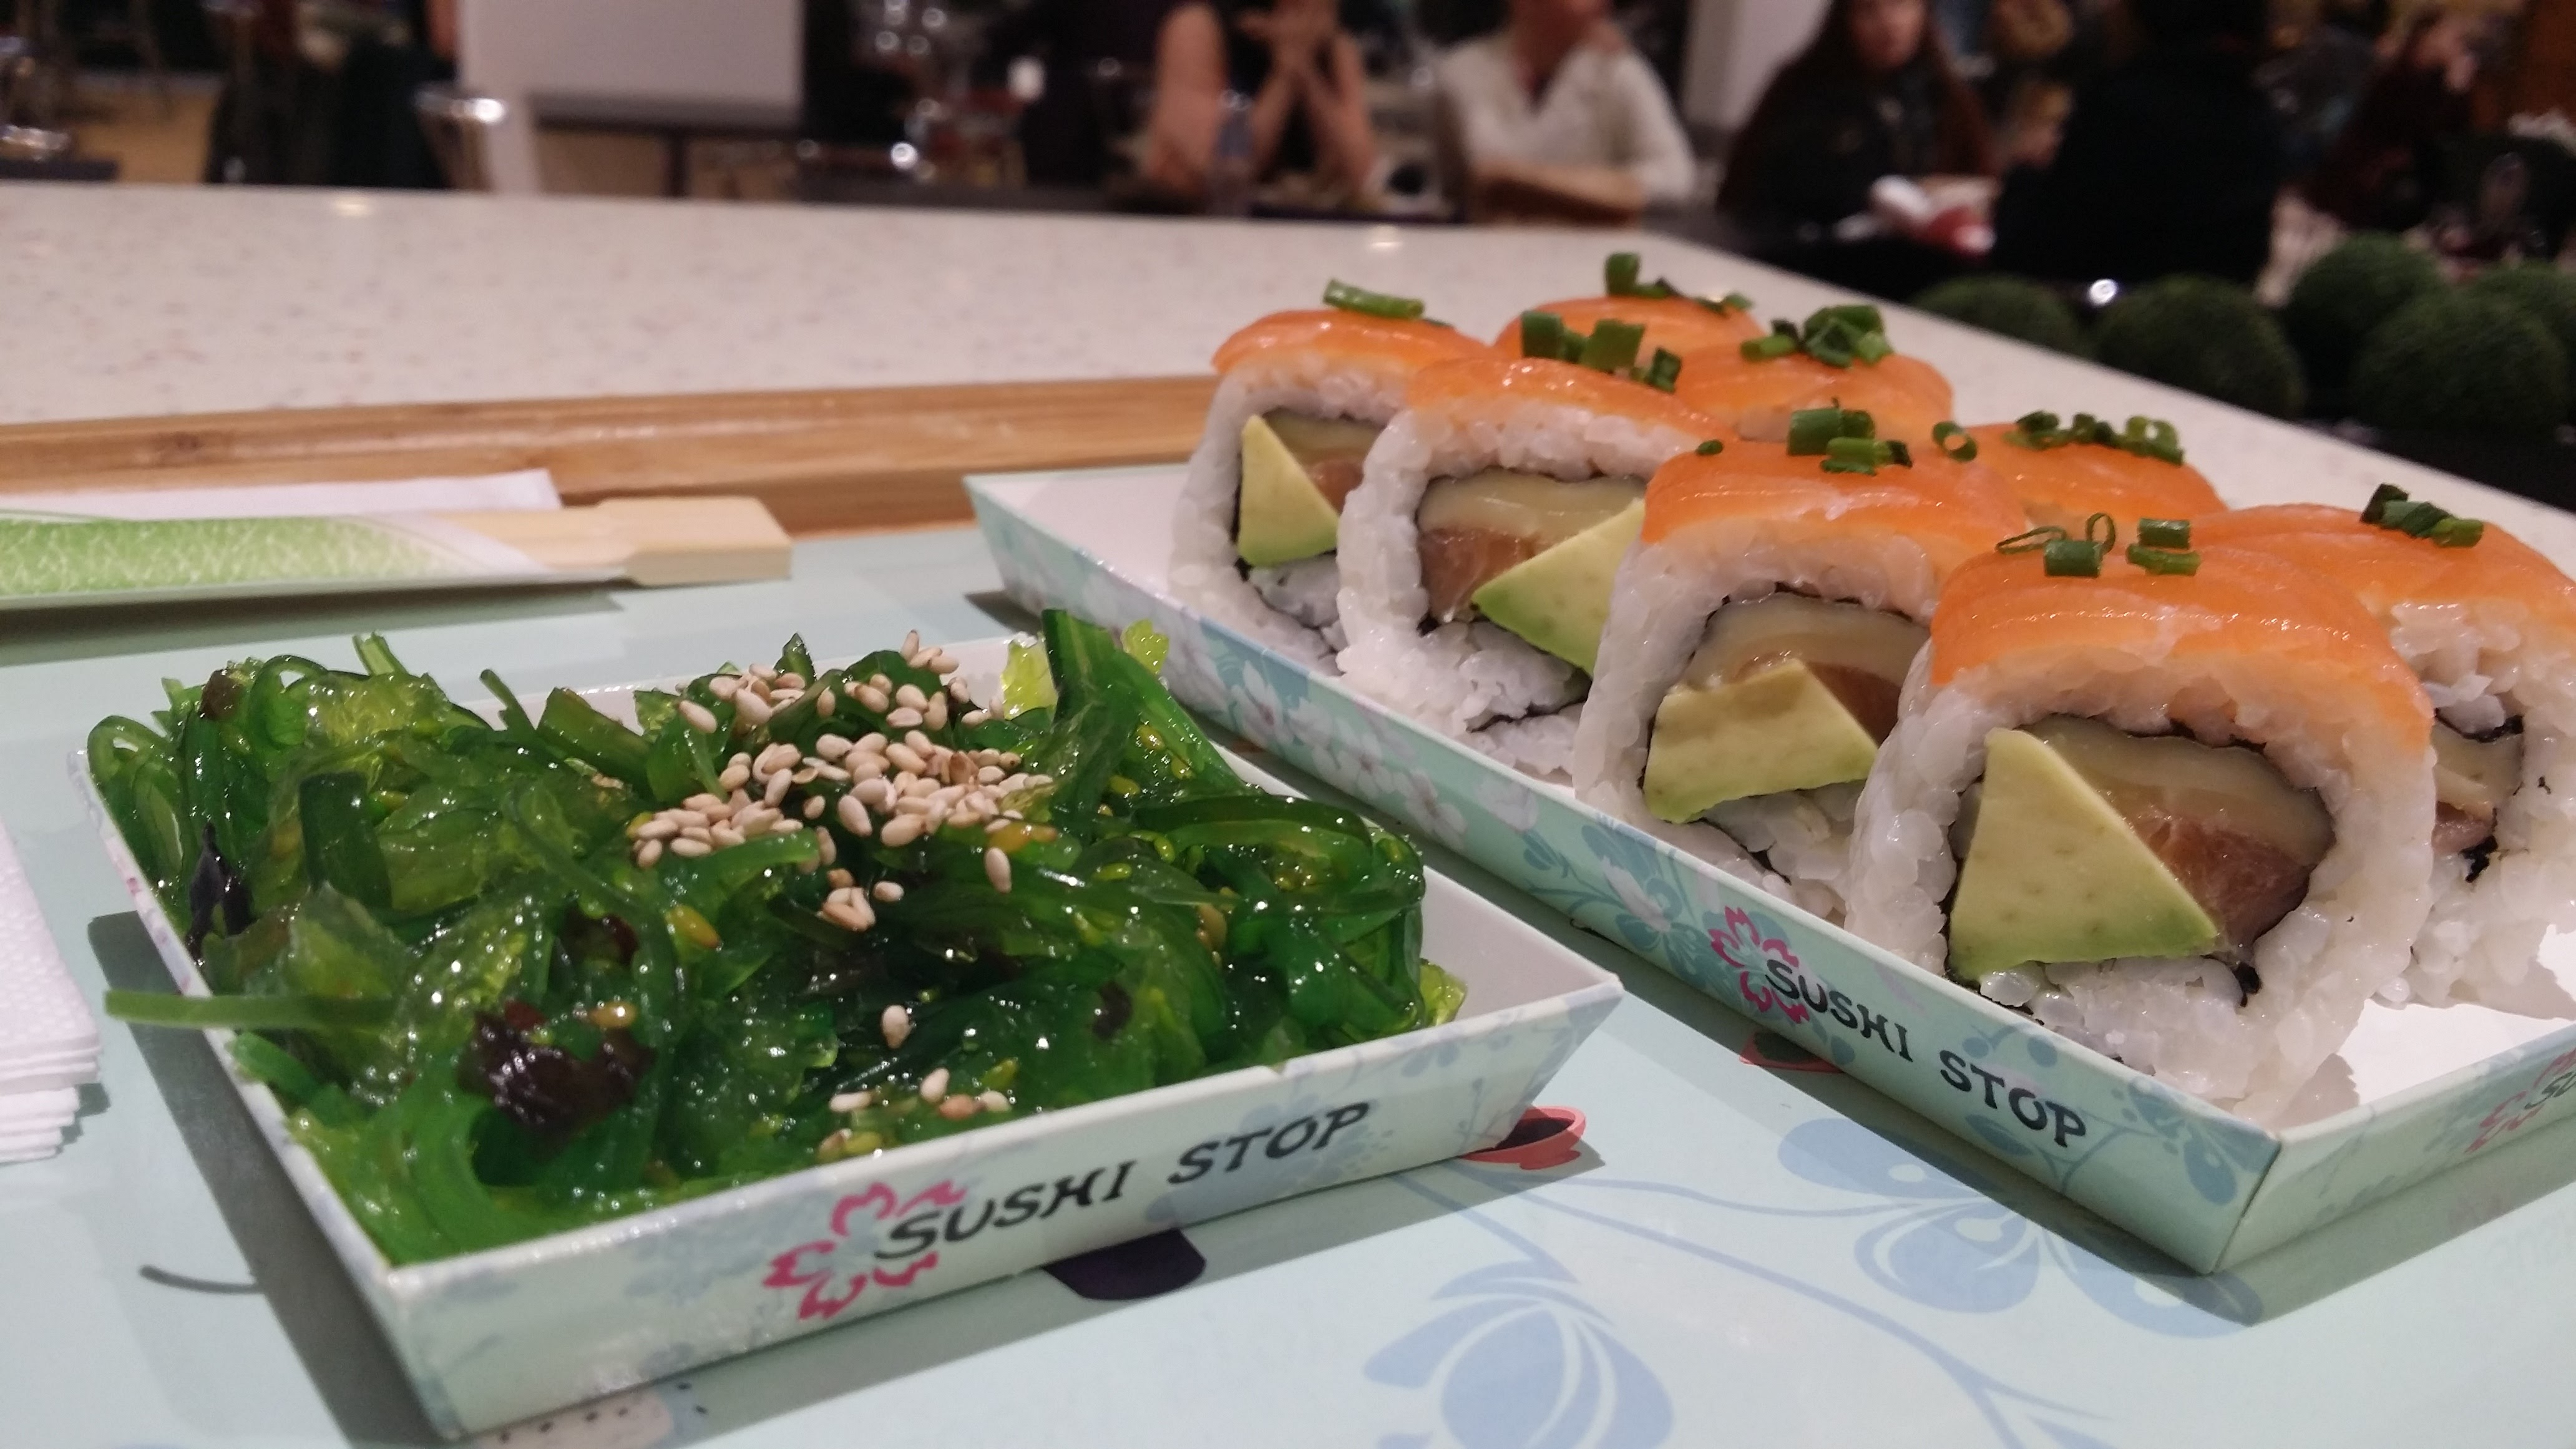 Sushi roll and salad